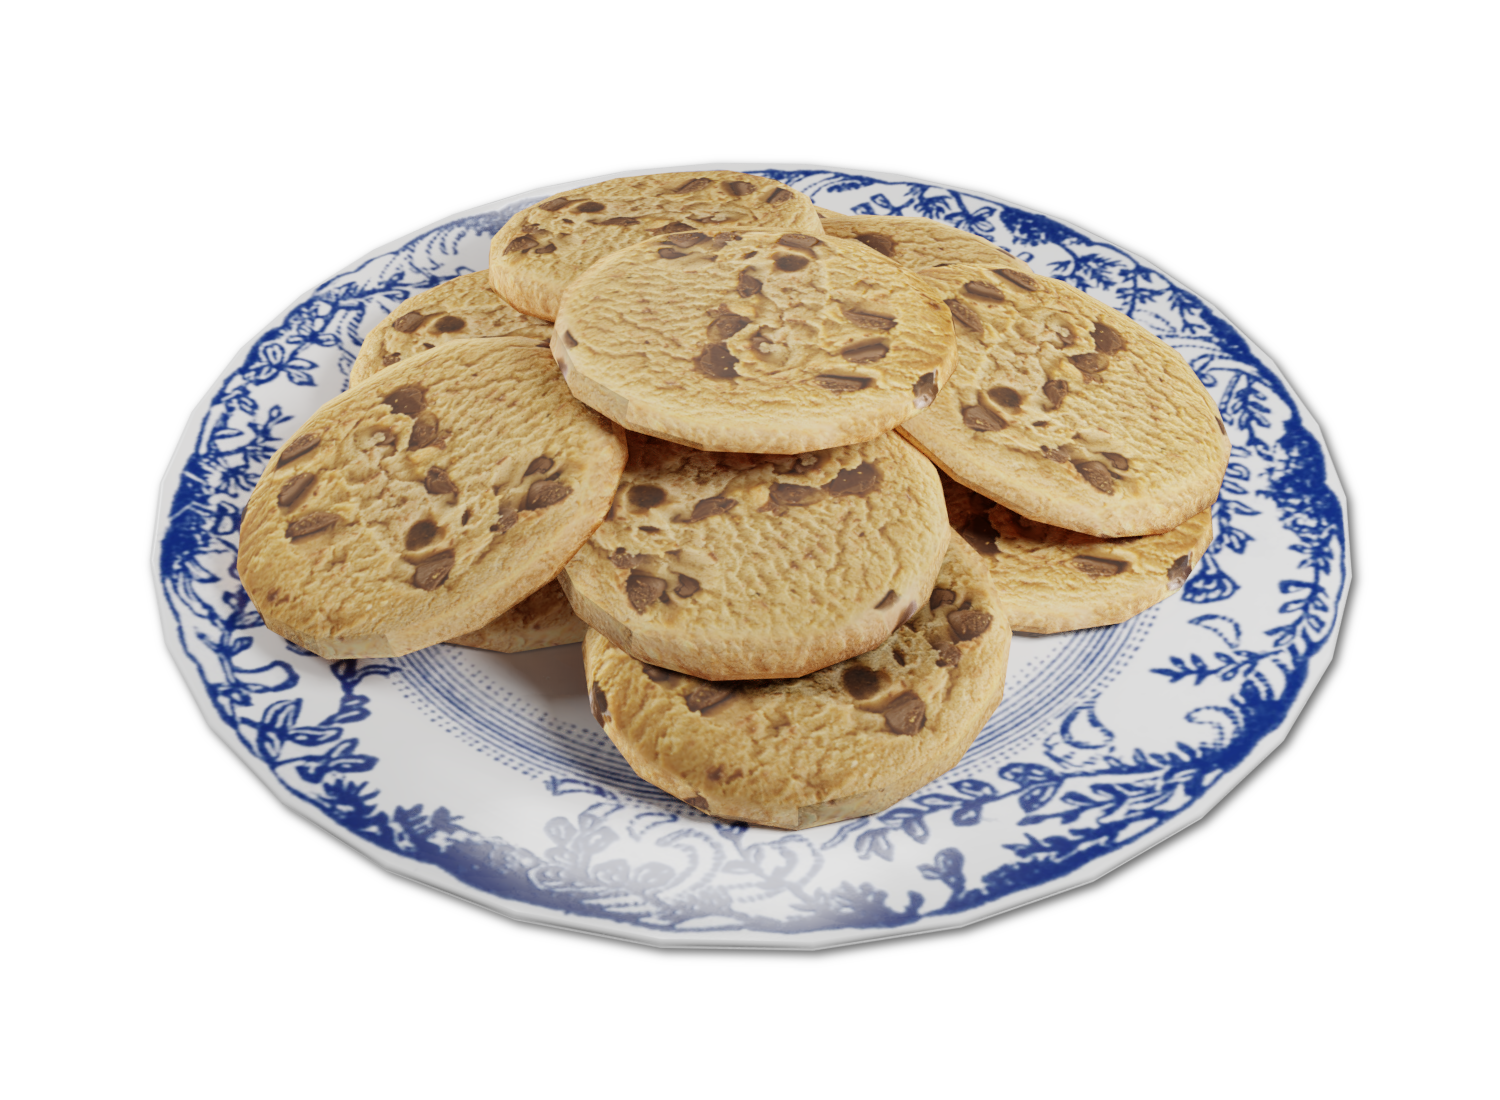 Plate Of Chocolate Chip Cookies 3d Cgi Computer Model Chocolate Chip Cookies Chocolate Chip Plates